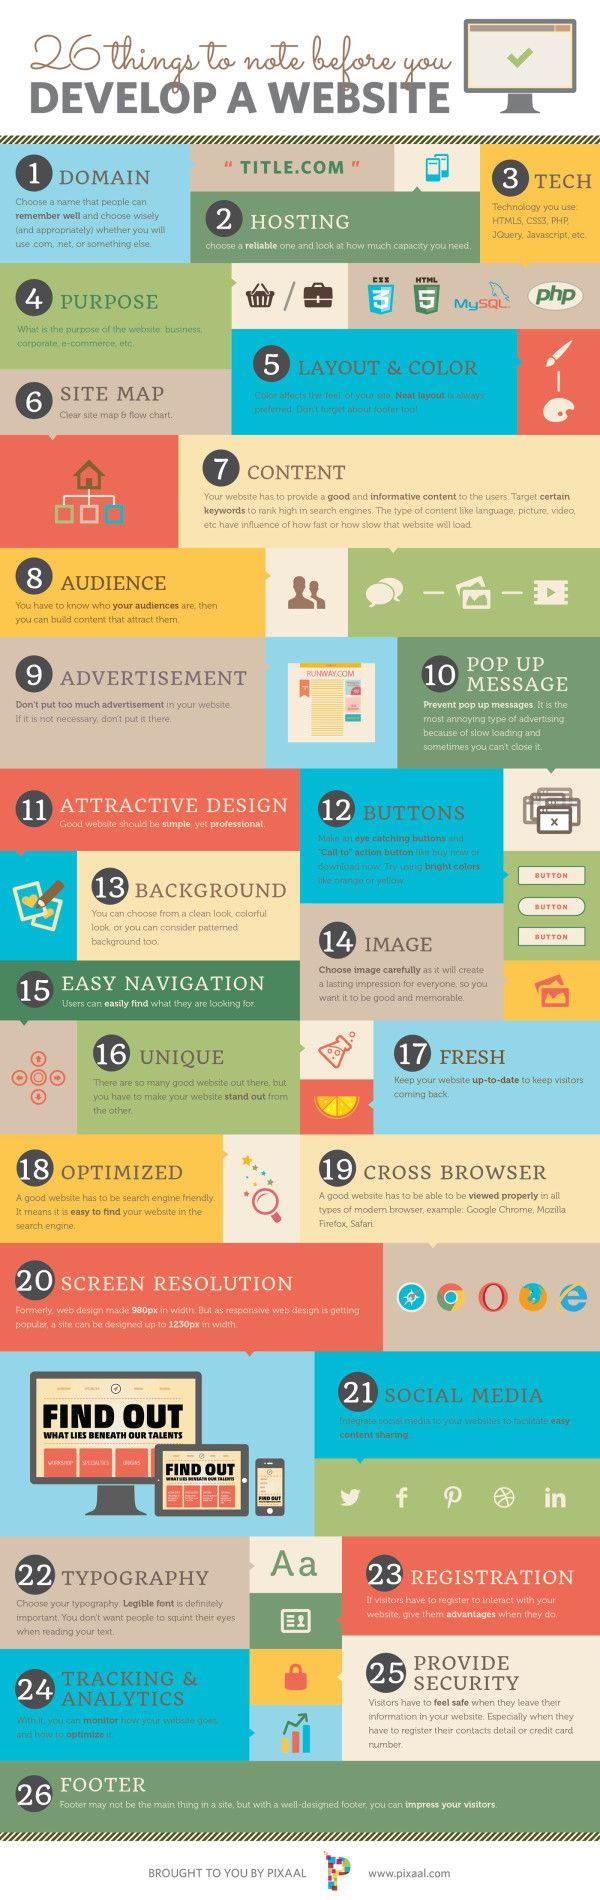 26 Things To Consider Before Developing Your Website